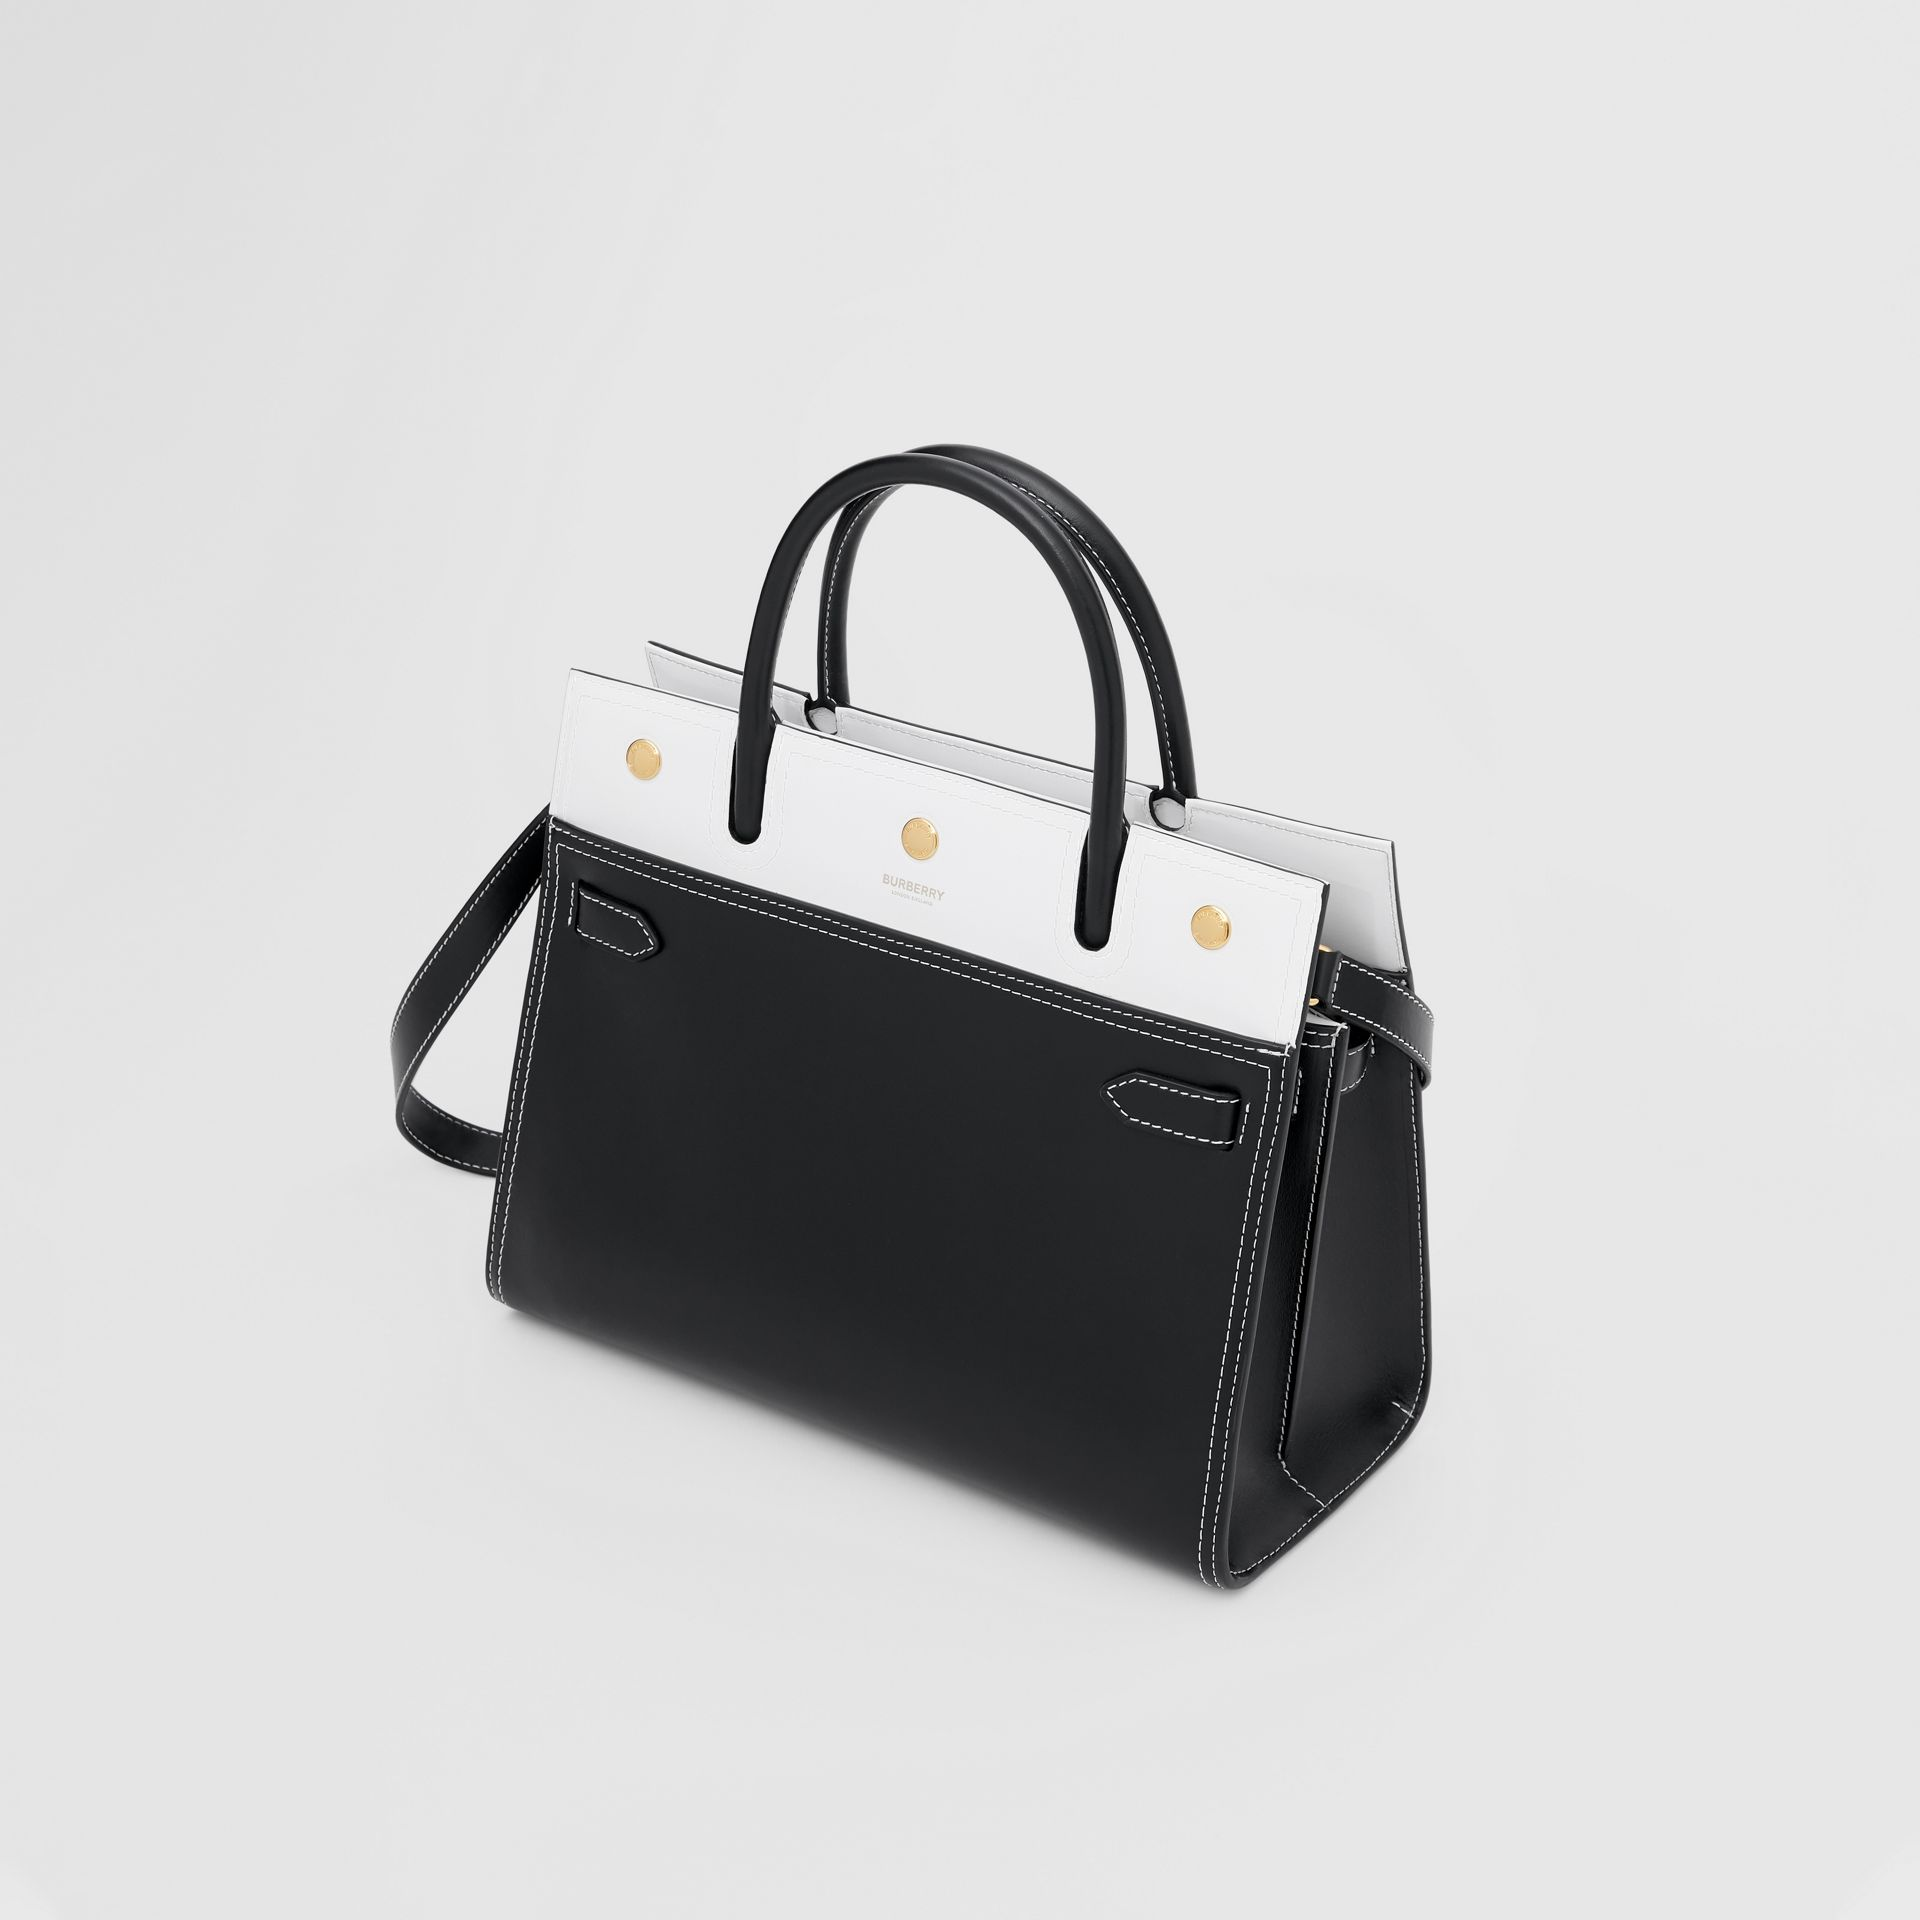 Small Leather Two-handle Title Bag in Black/white - Women | Burberry - gallery image 3